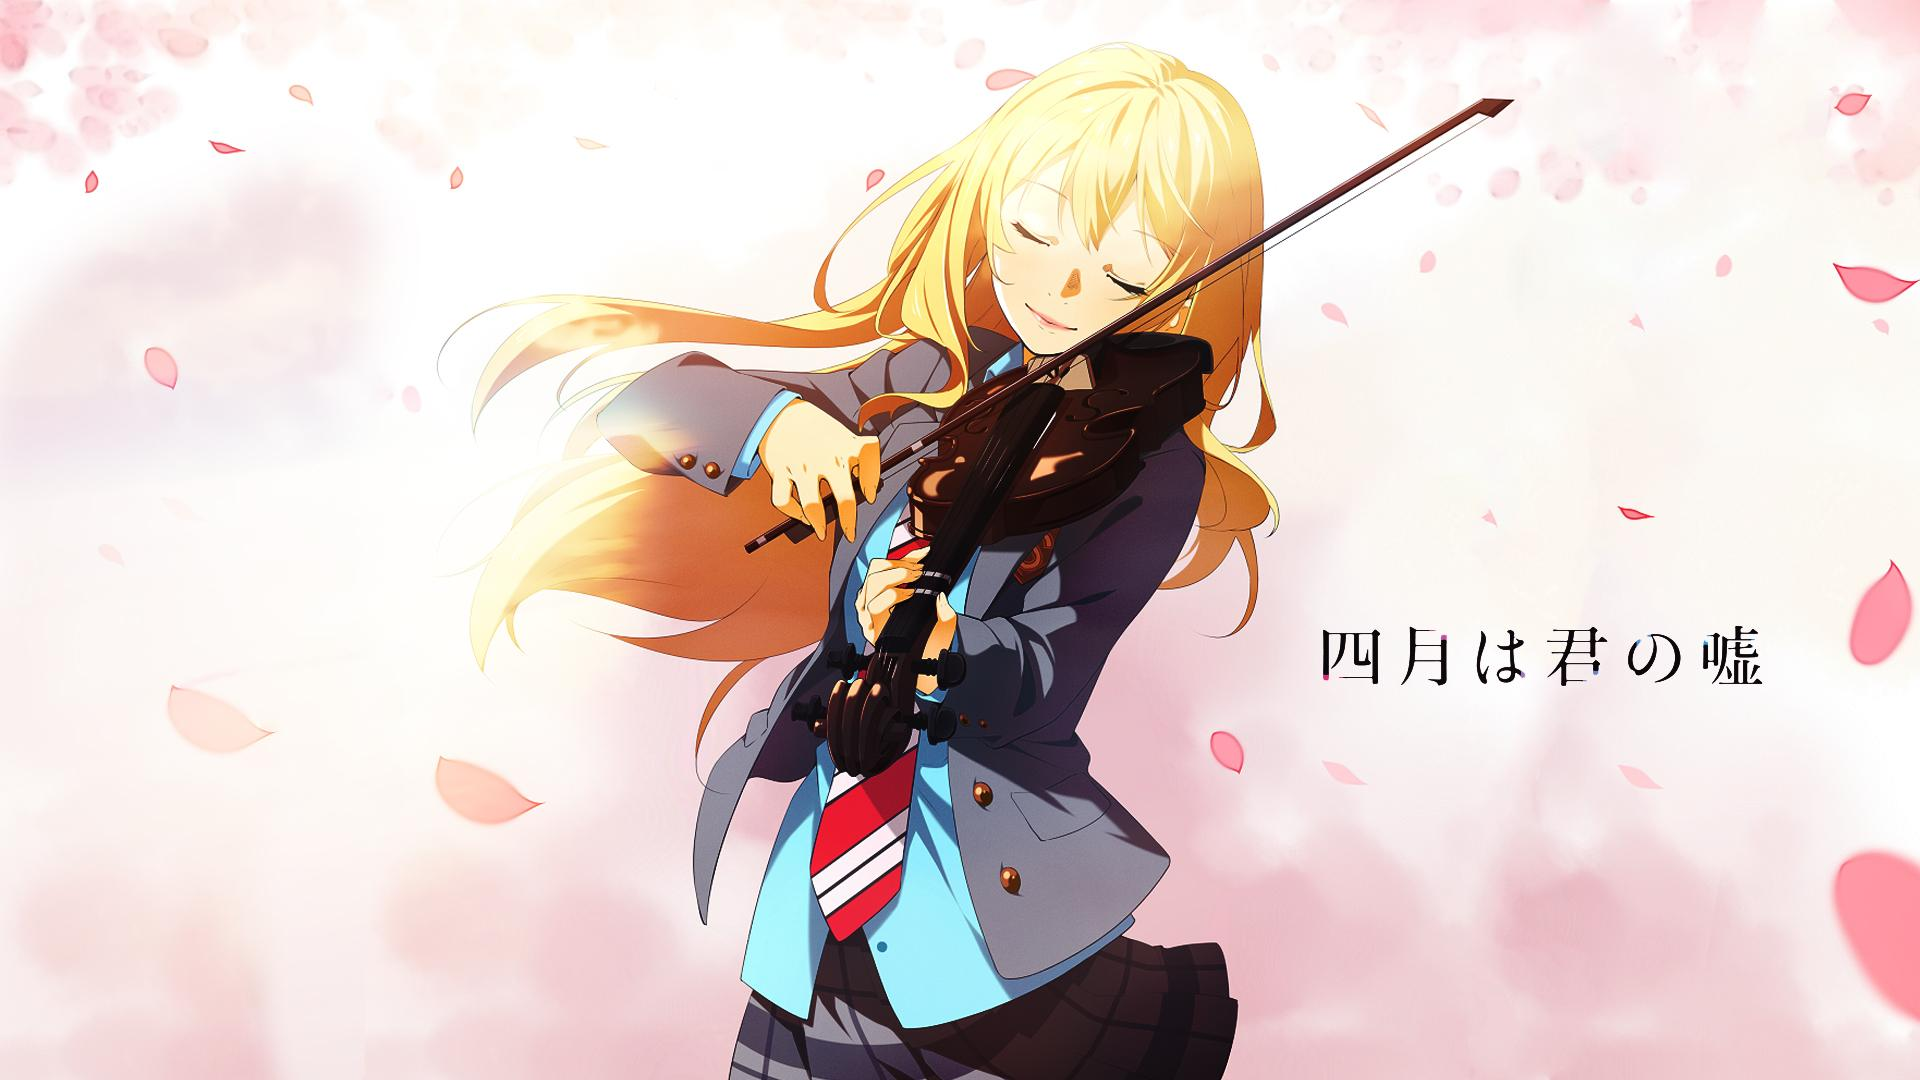 Your Lie In April Hd Wallpaper Posted By Ethan Mercado